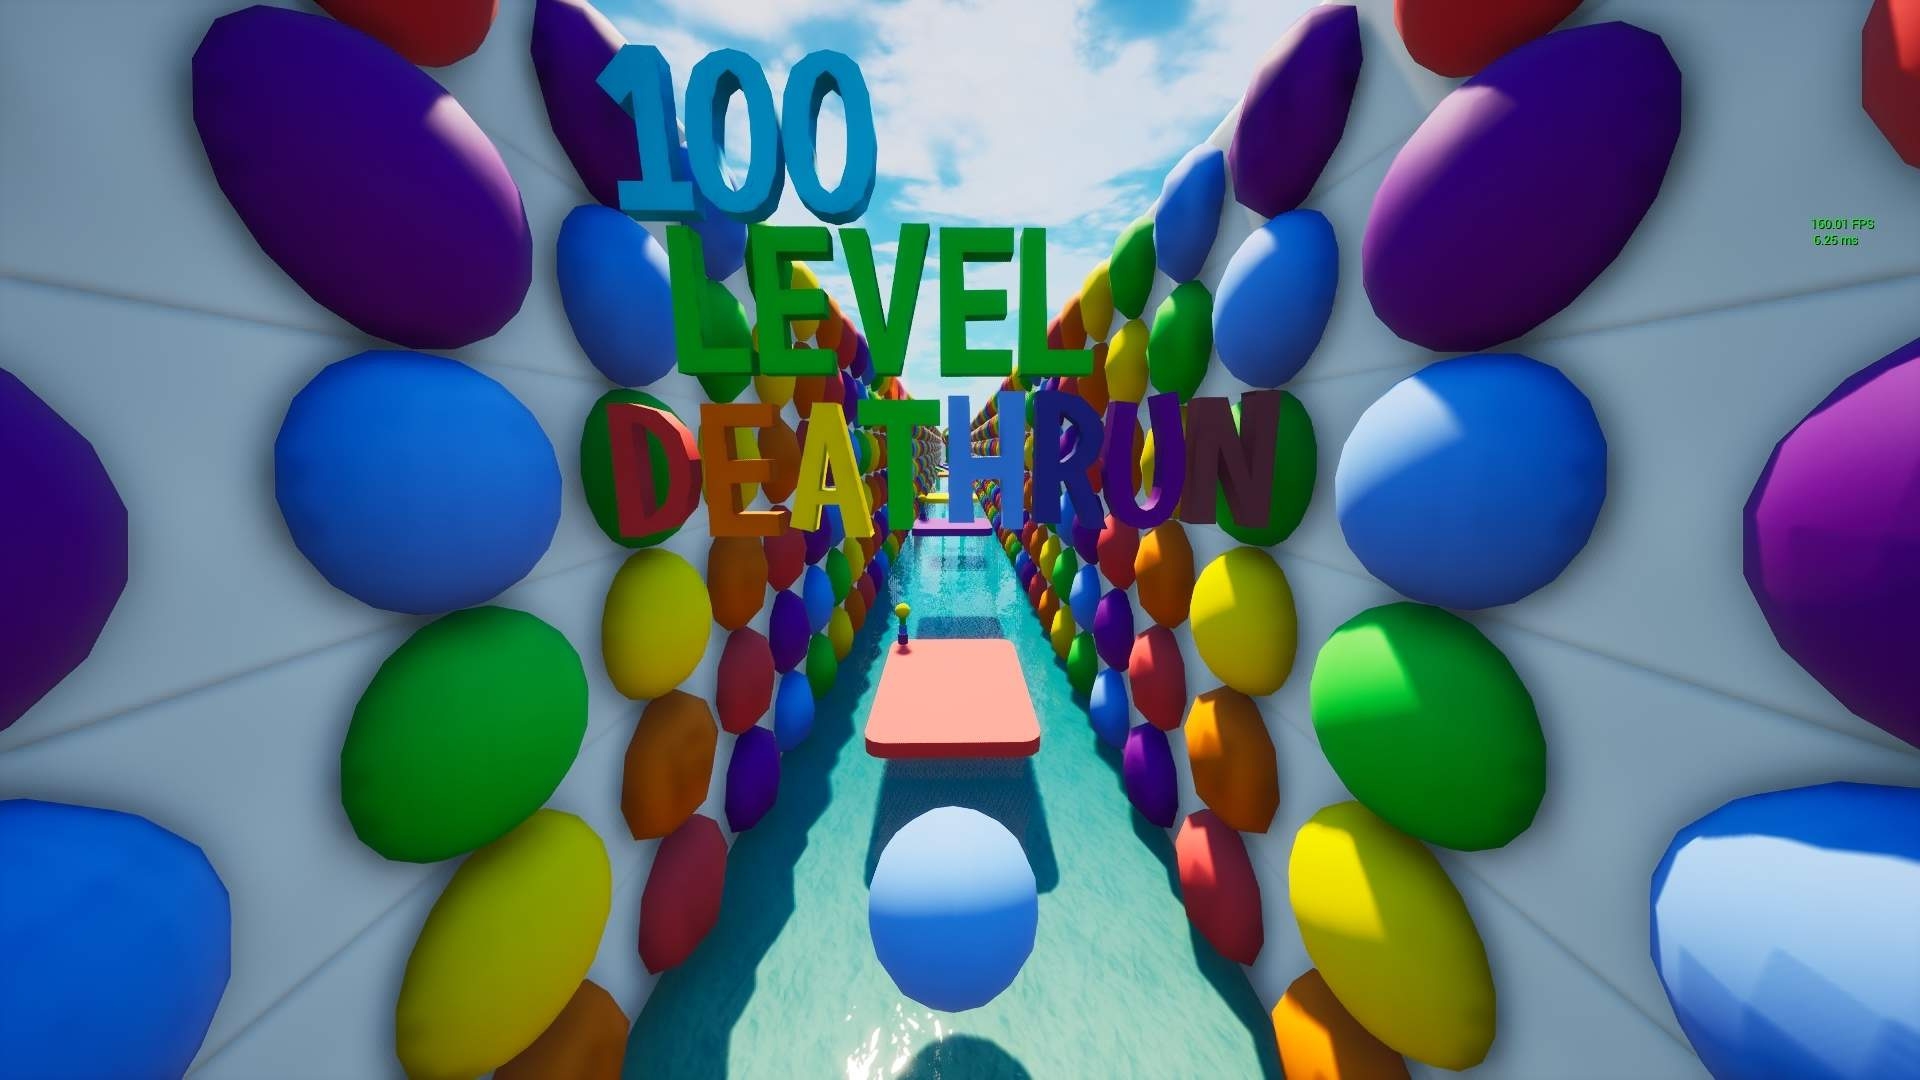 100 LEVEL RAINBOW DEATHRUN 🌈